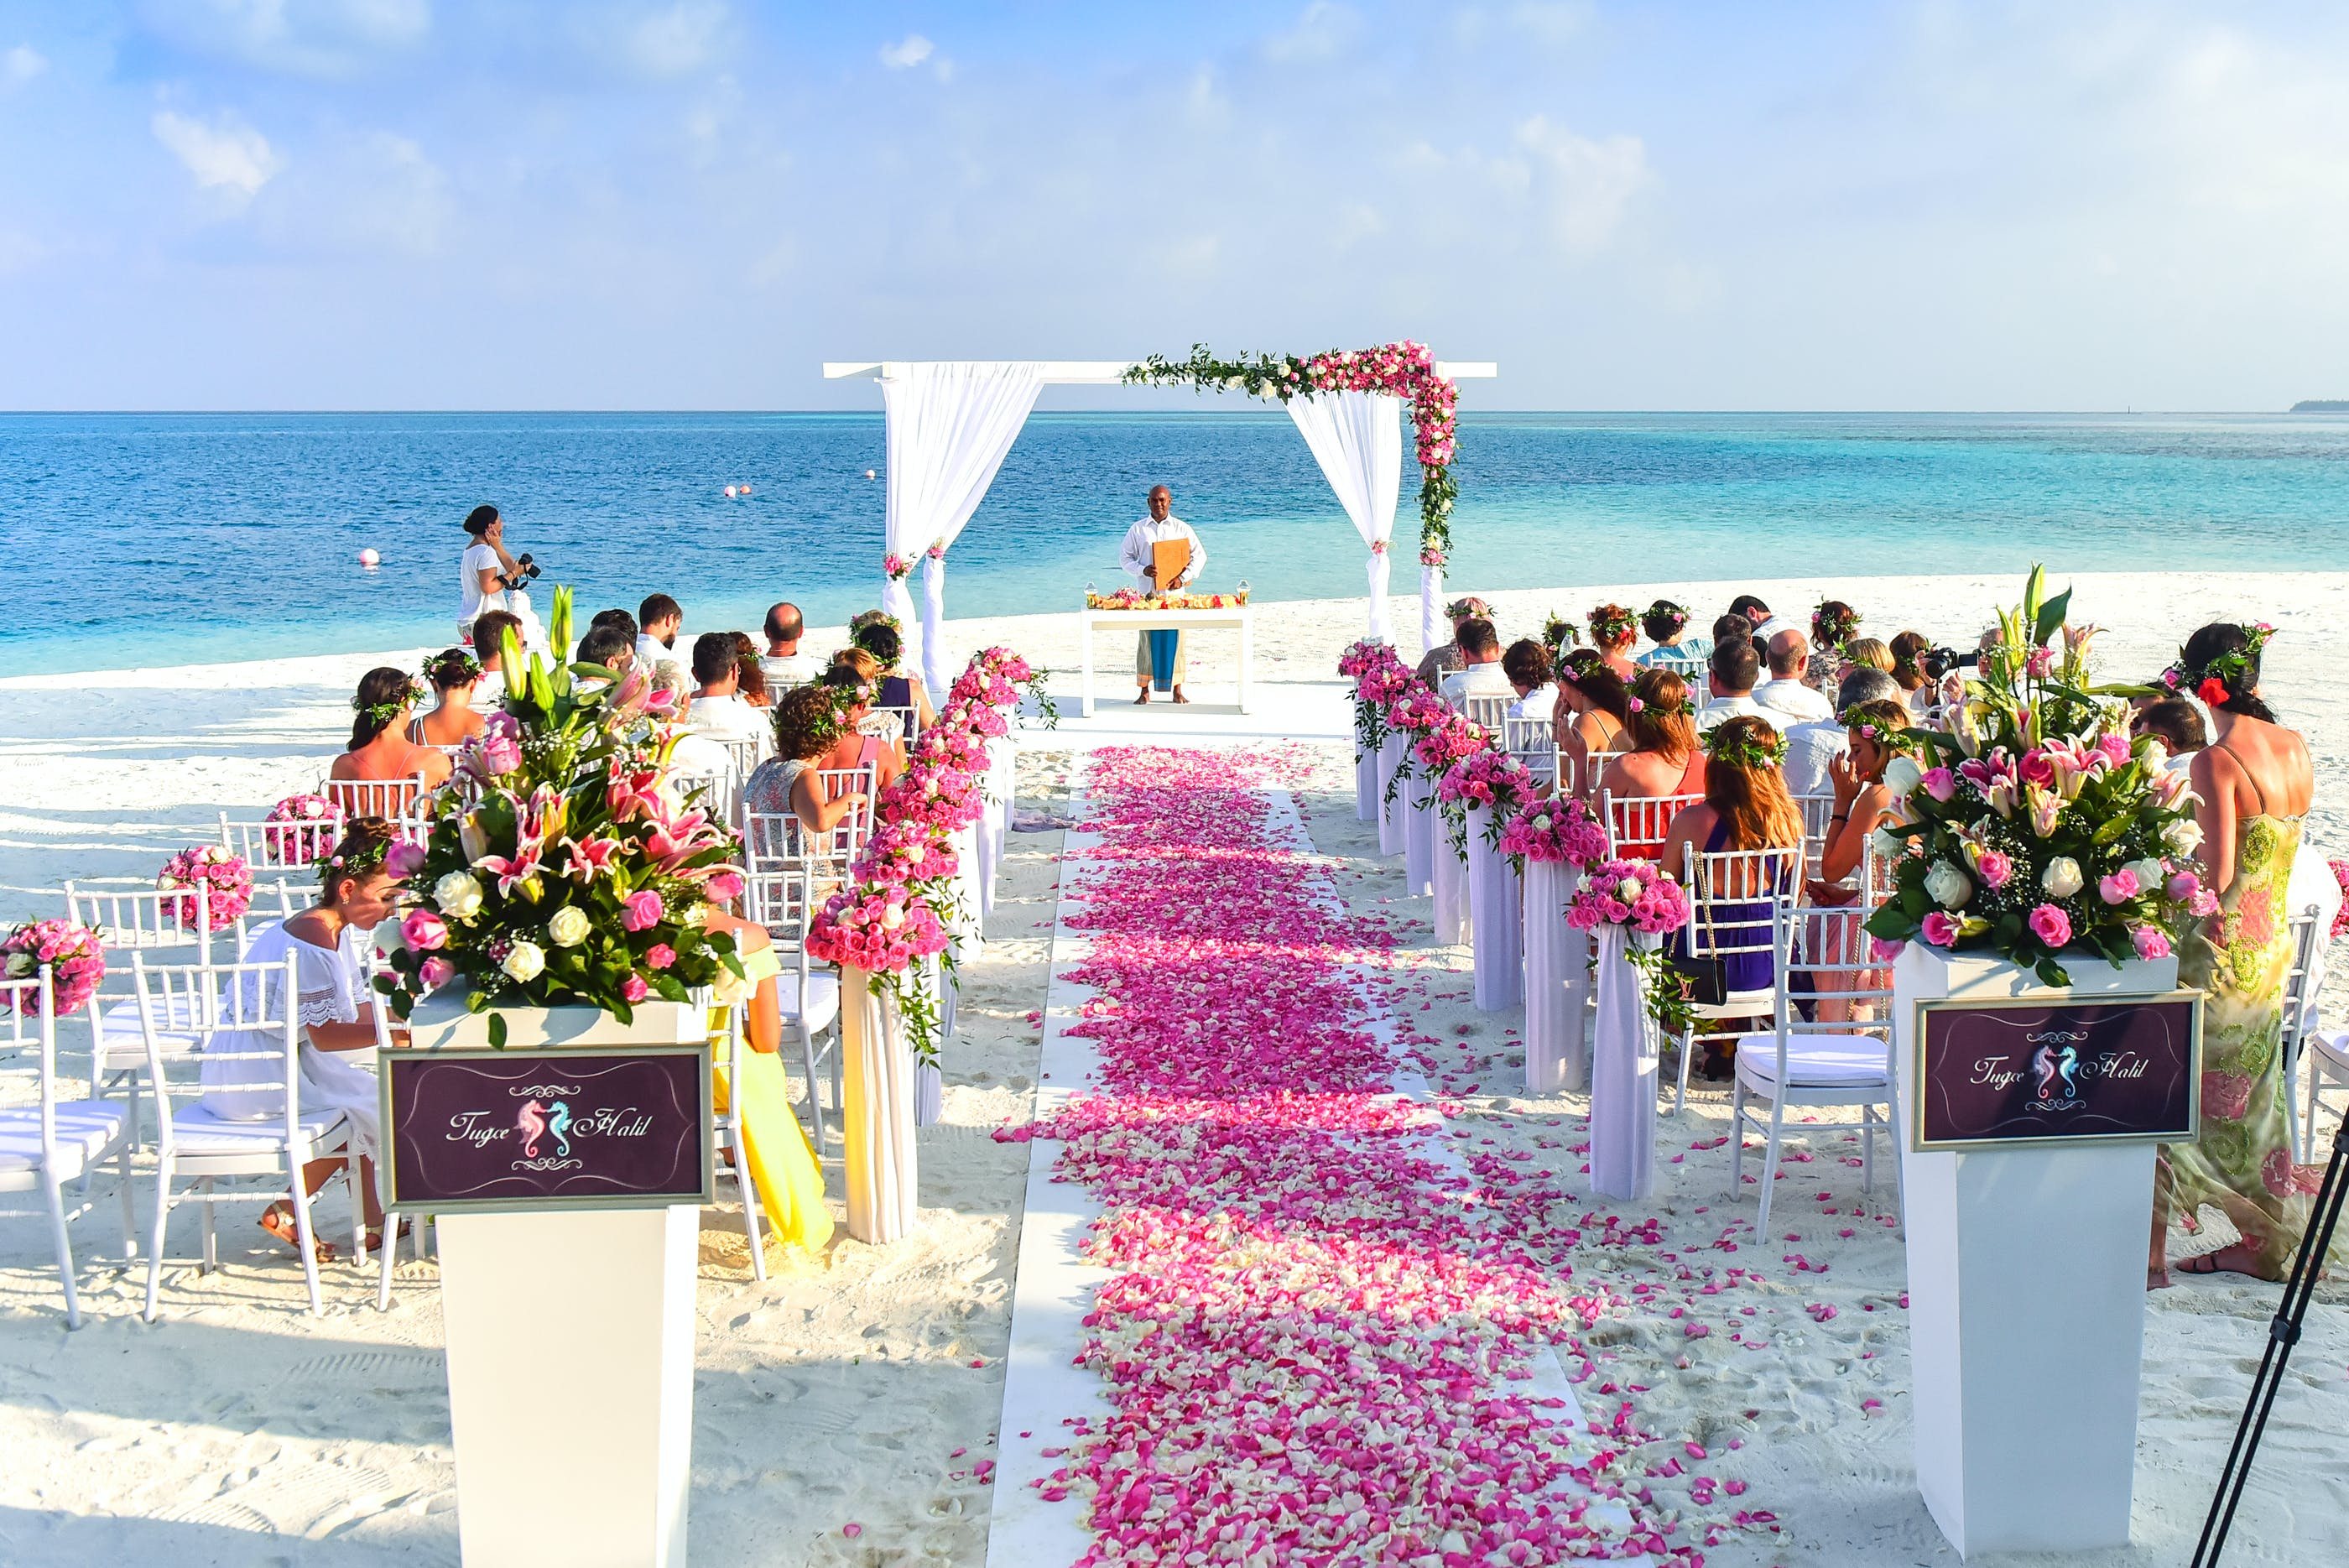 Beach Wedding Ceremony during Daytime